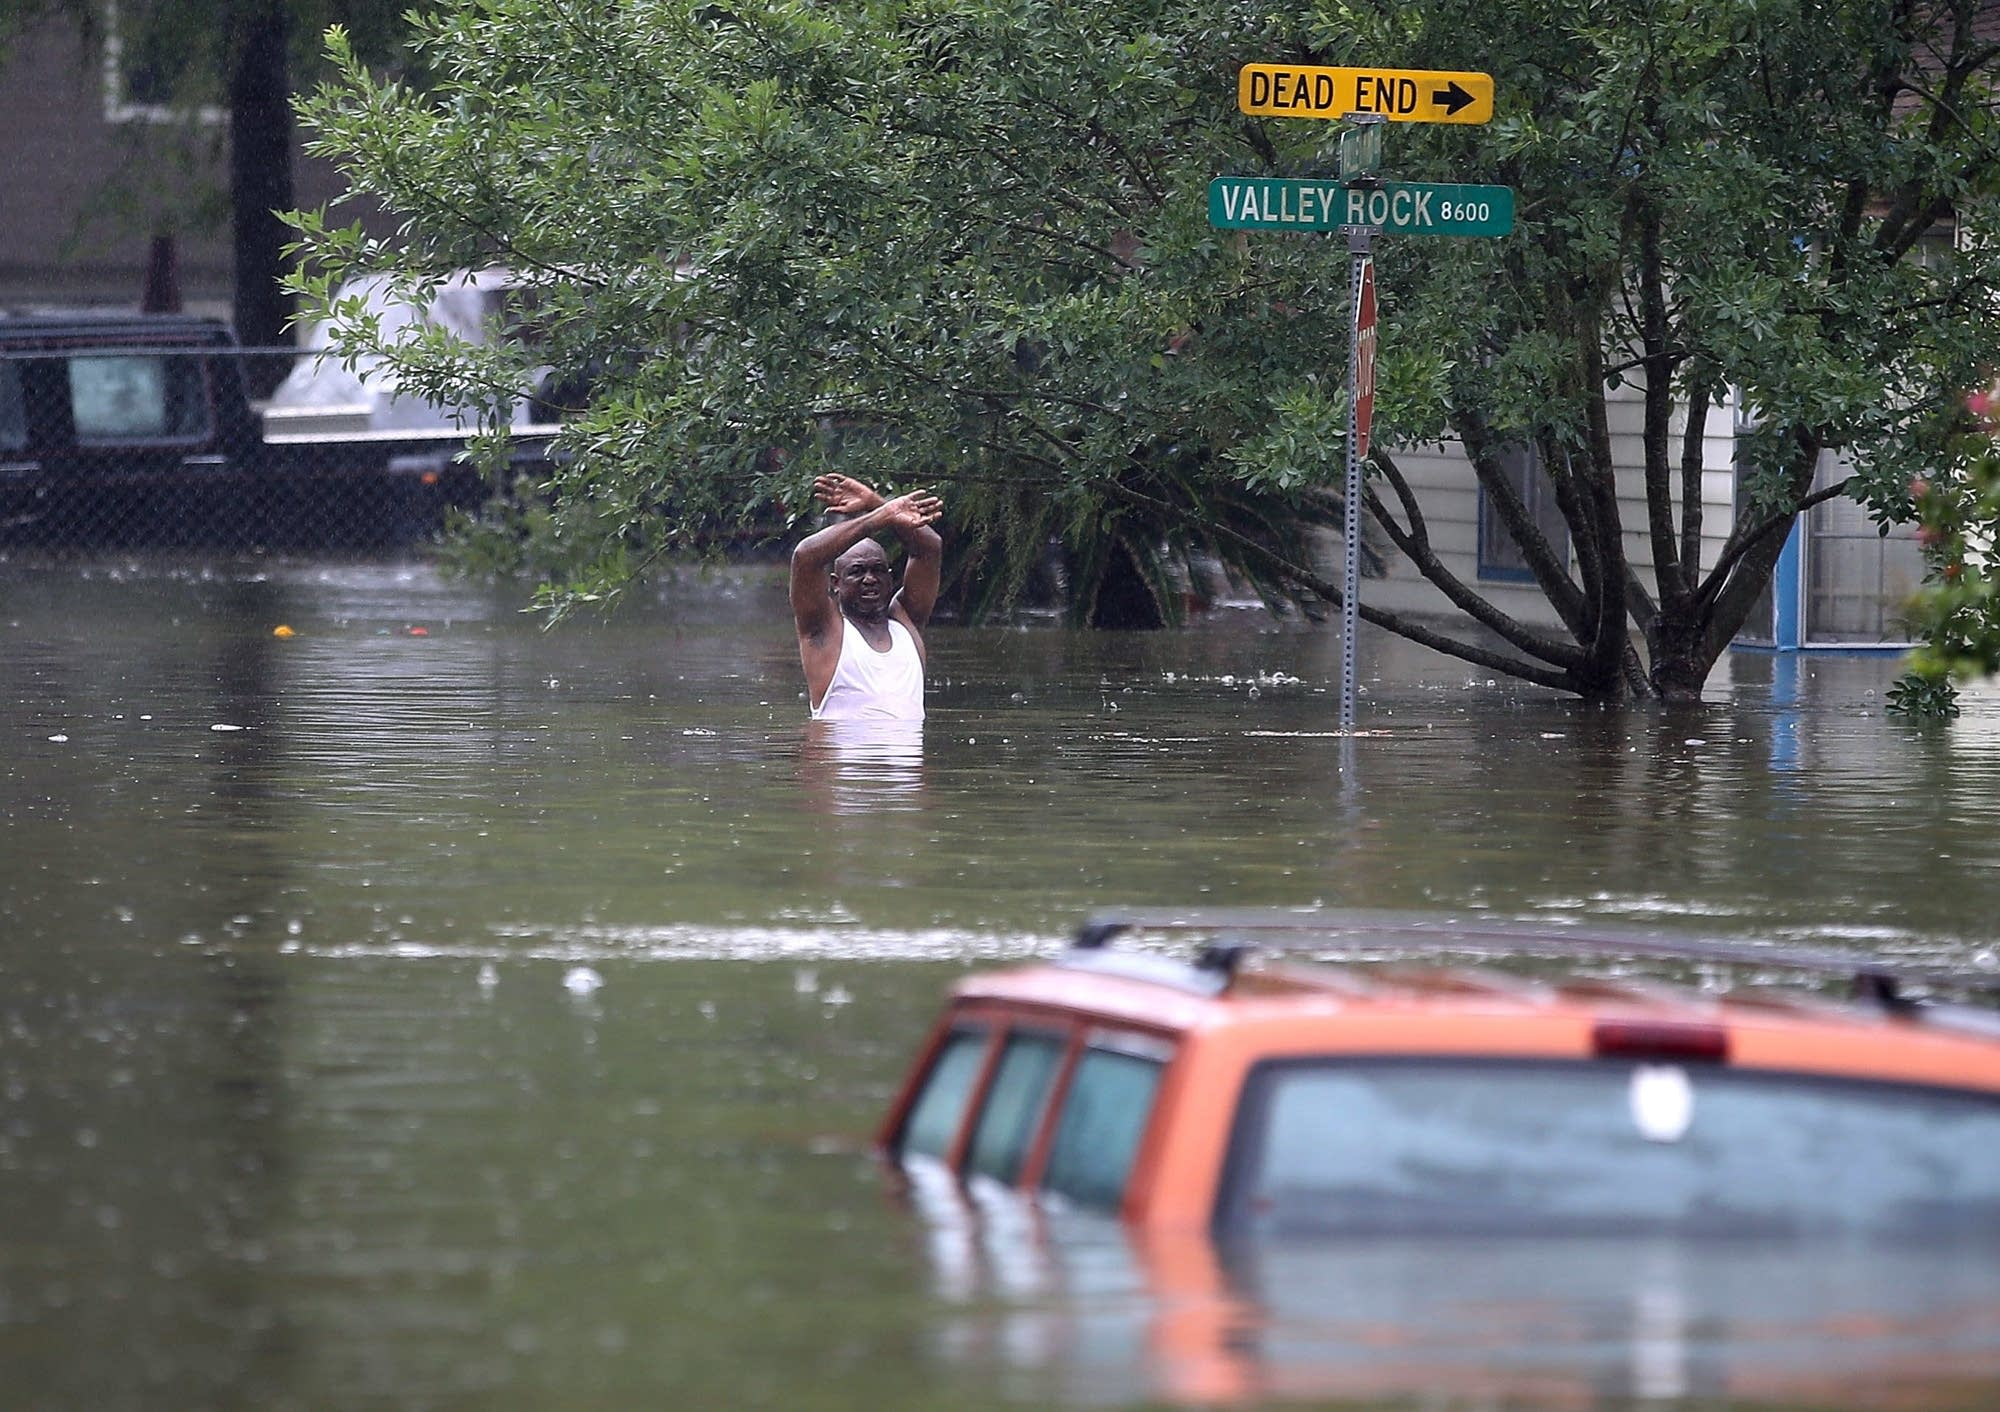 A man waves down a rescue crew as he tries to leave the area.